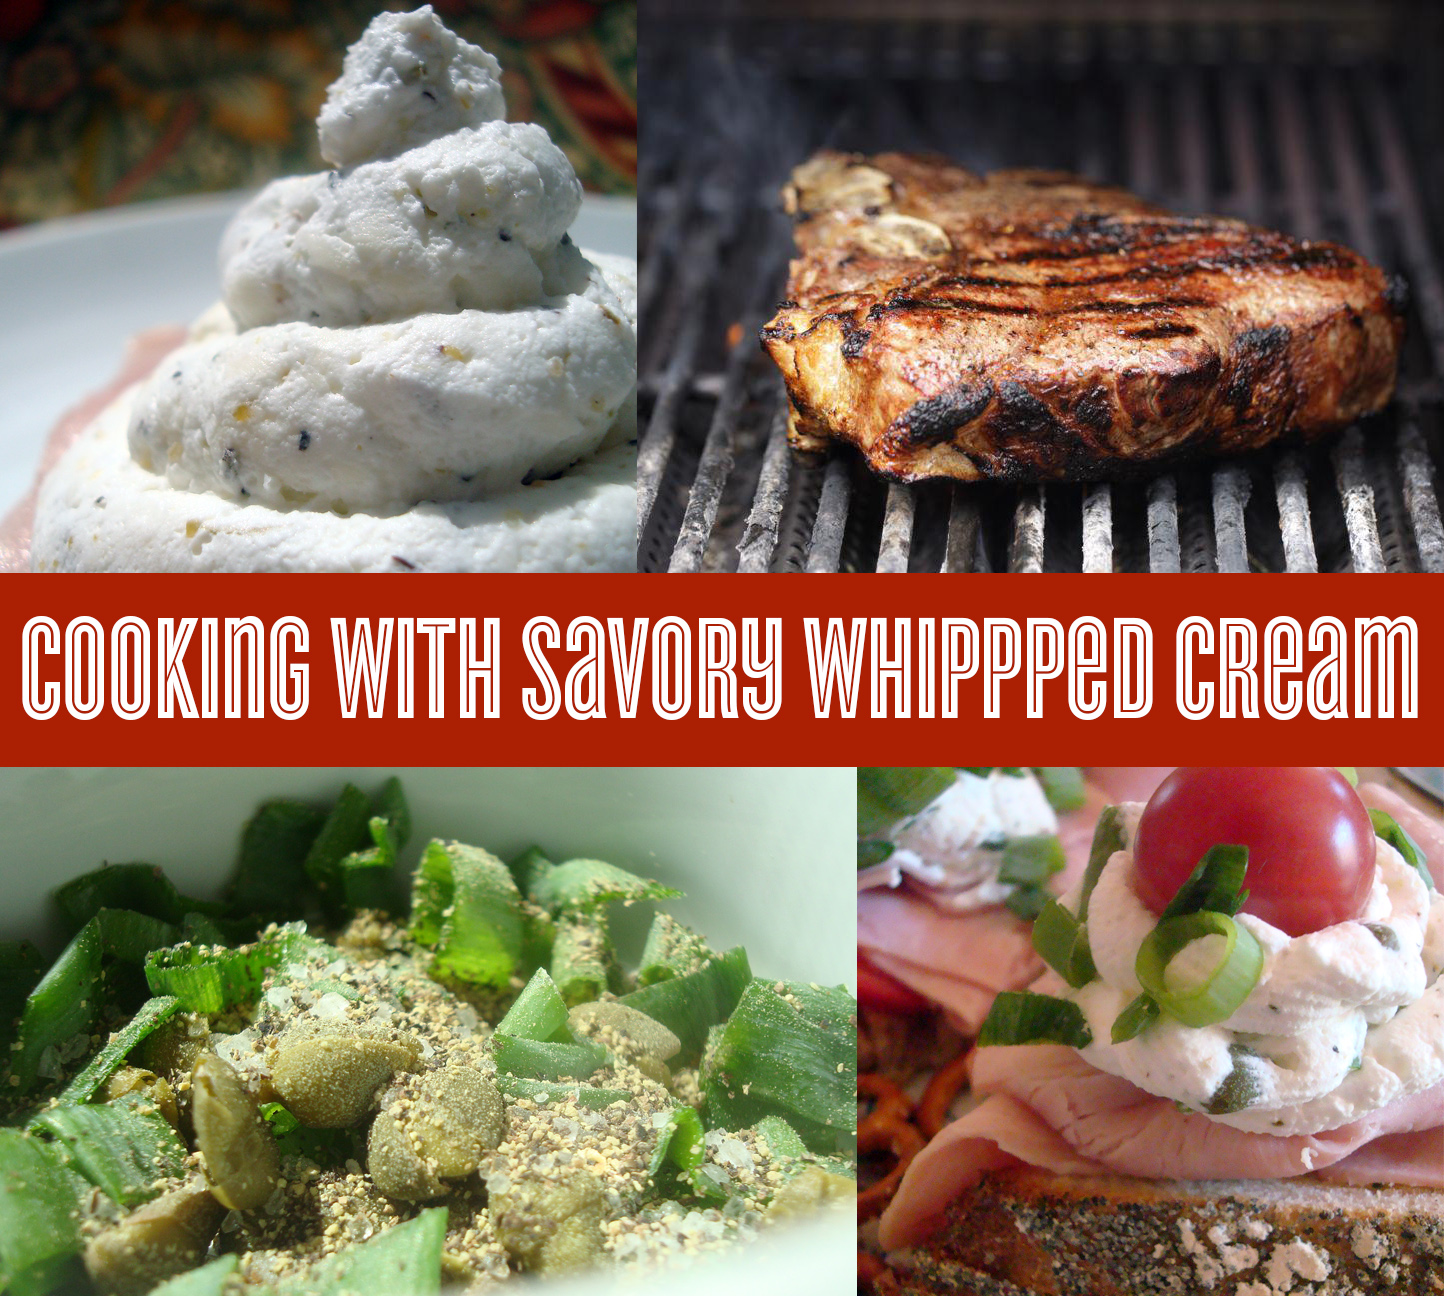 How to cook with savory whipped cream